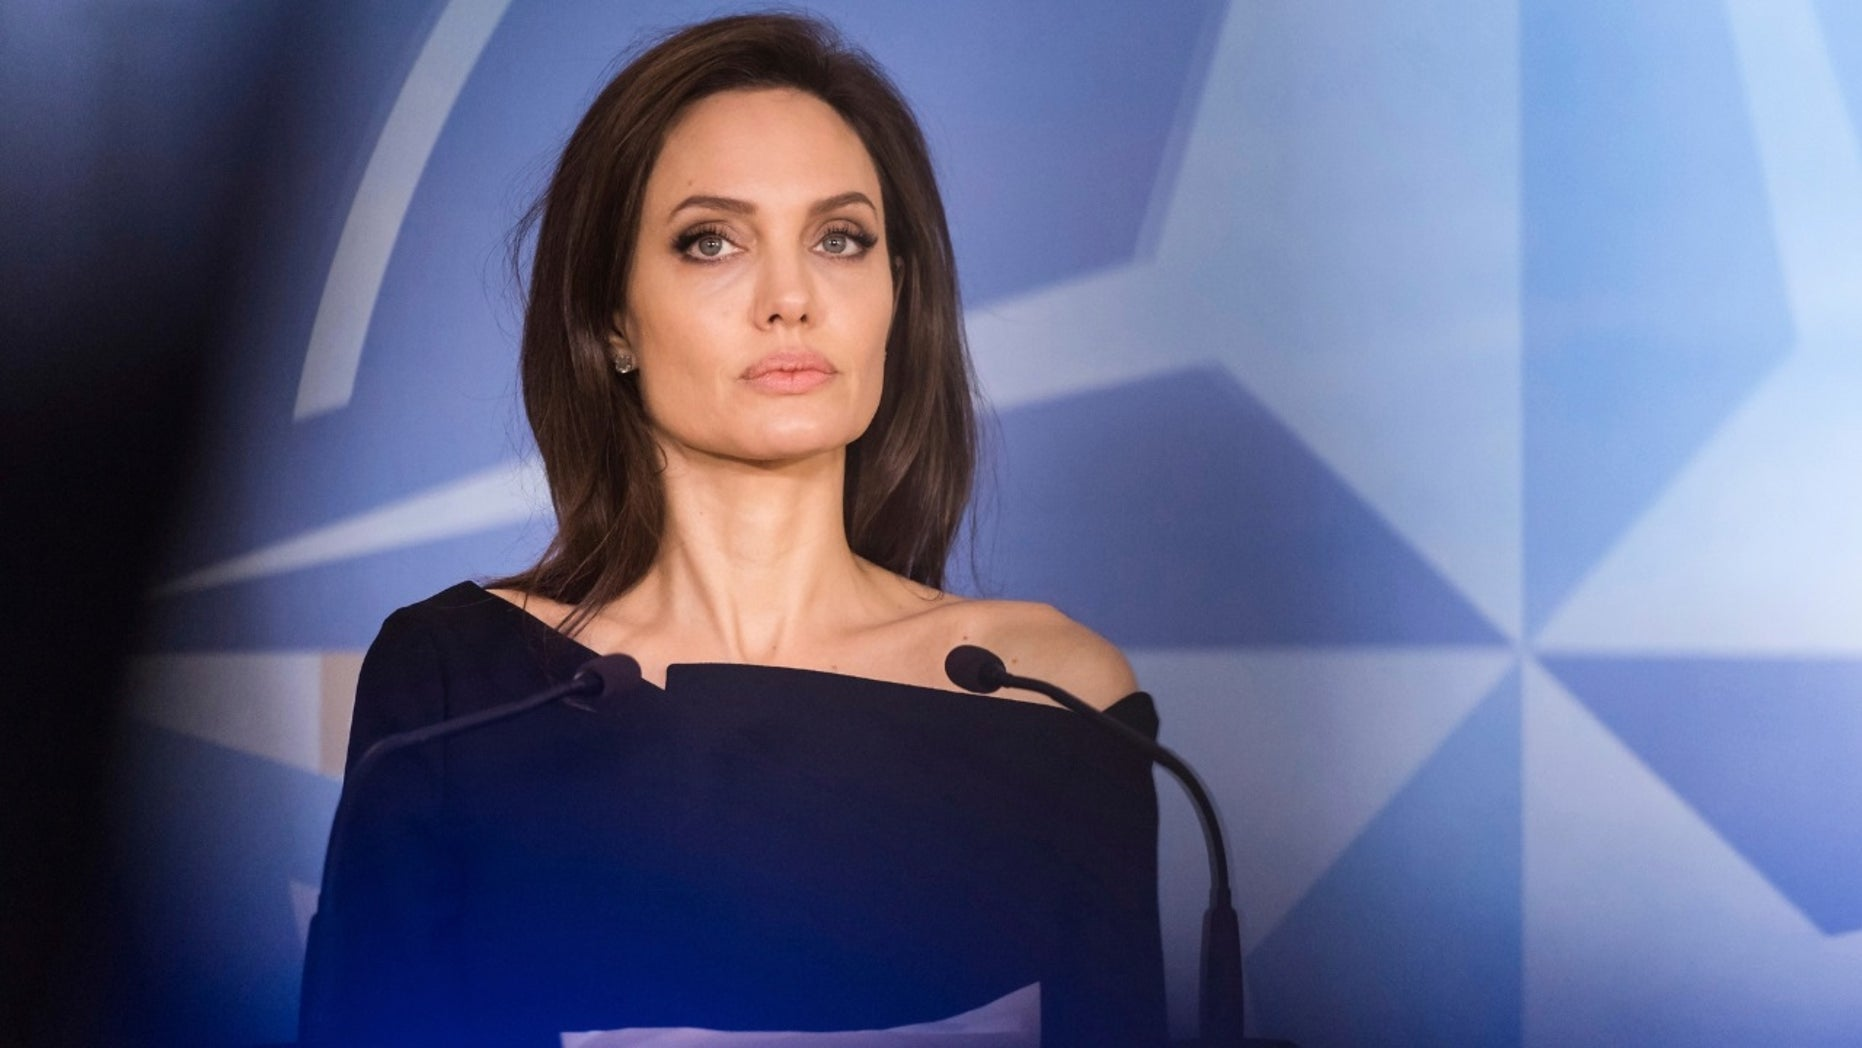 Angelina Jolie not ruling out political career